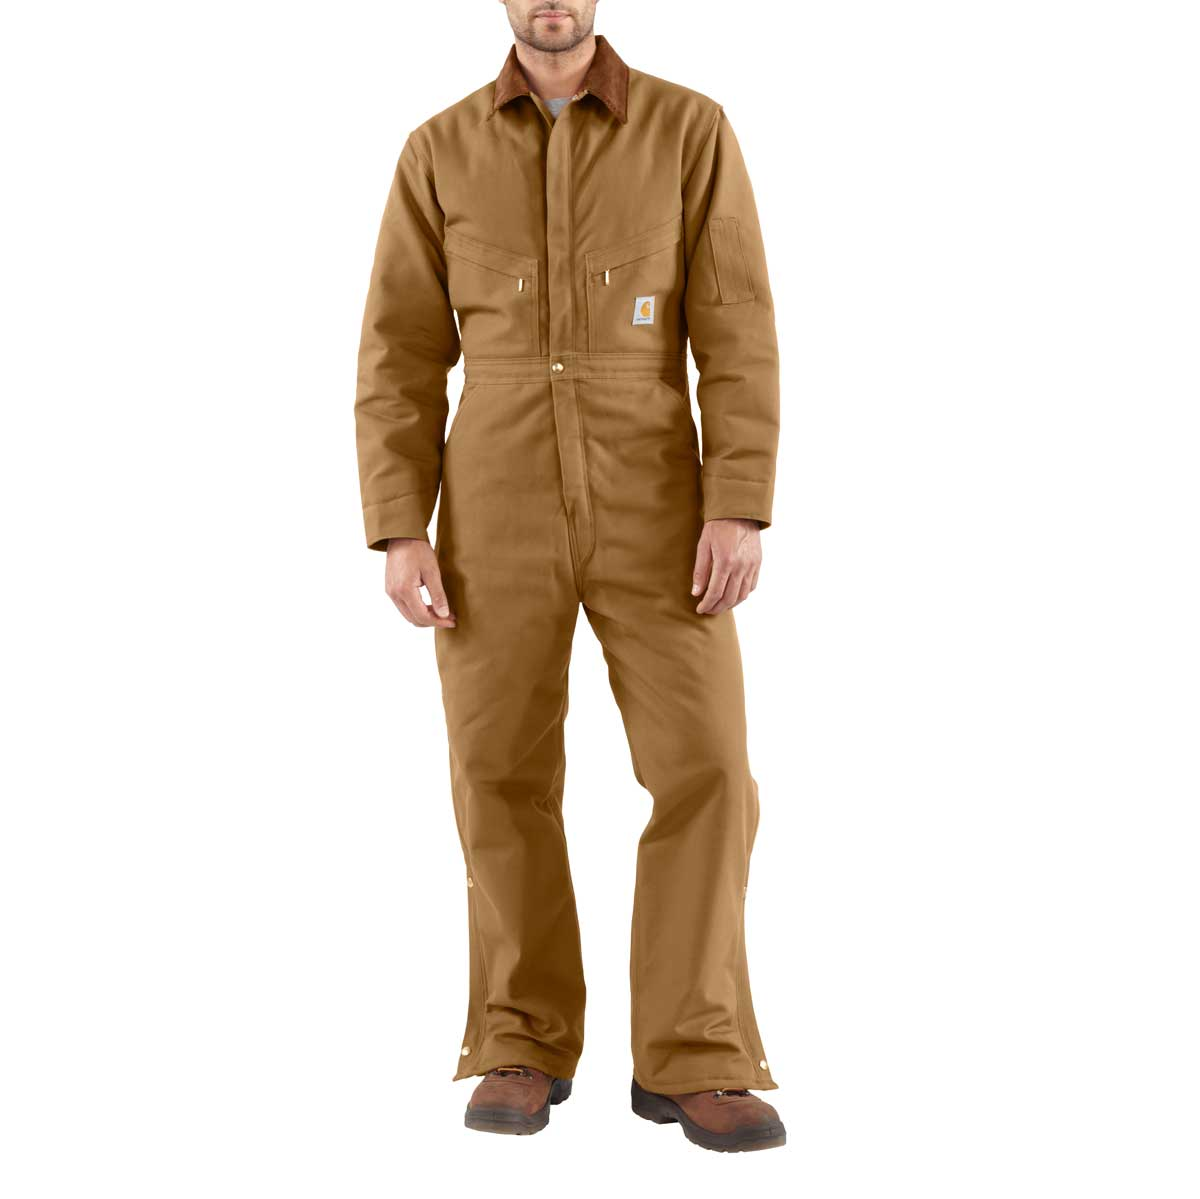 Carhartt Quilt-Lined Cotton Duck Coveralls, X01